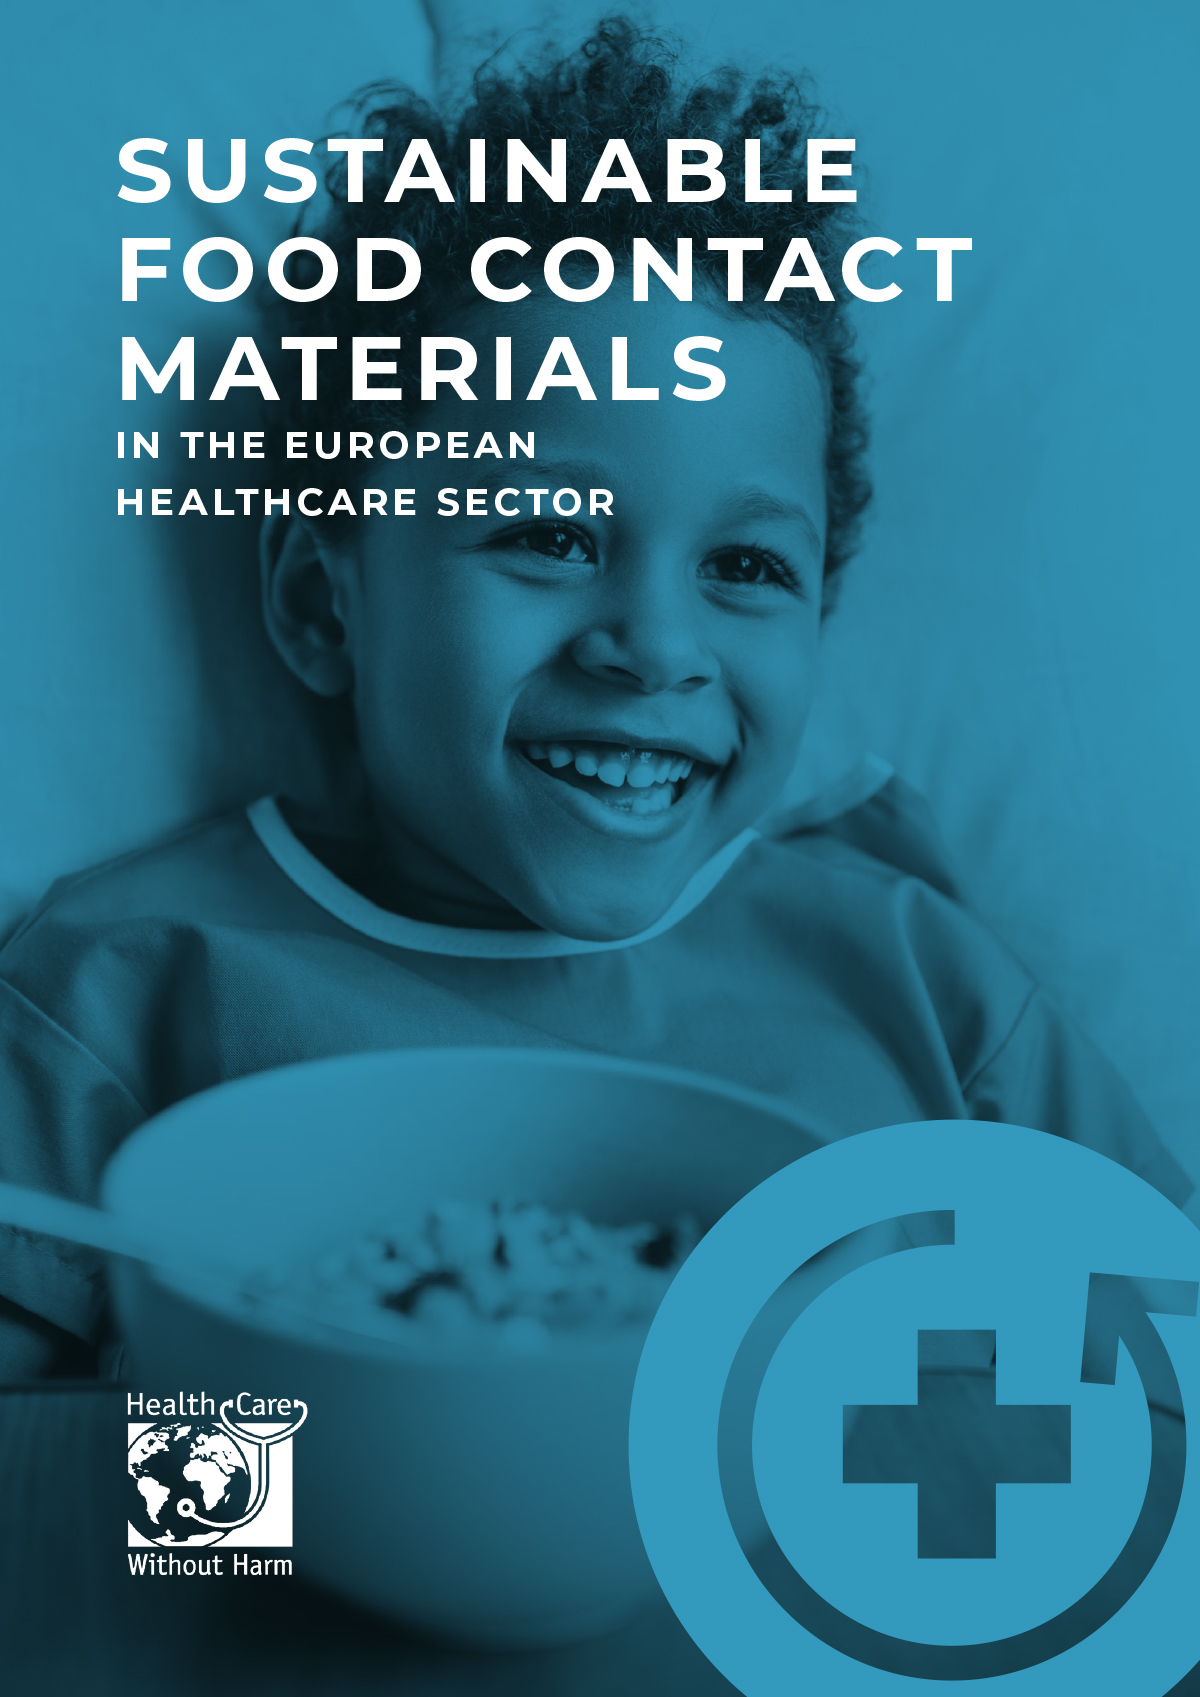 Sustainable food contact materials in healthcare